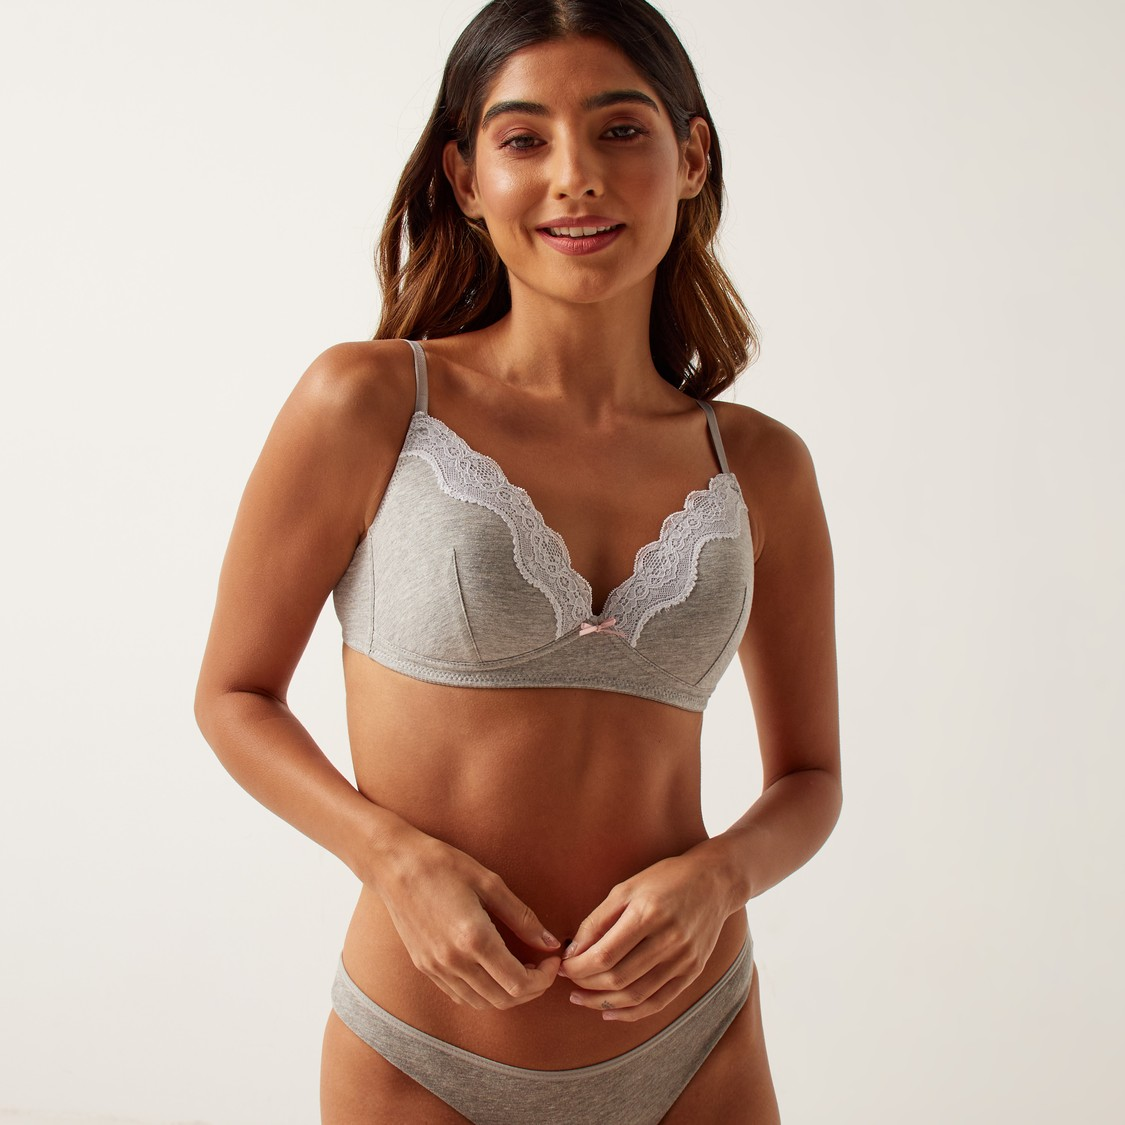 Set of 2 - Lace Detail A-frame Bra with Hook and Eye Closure